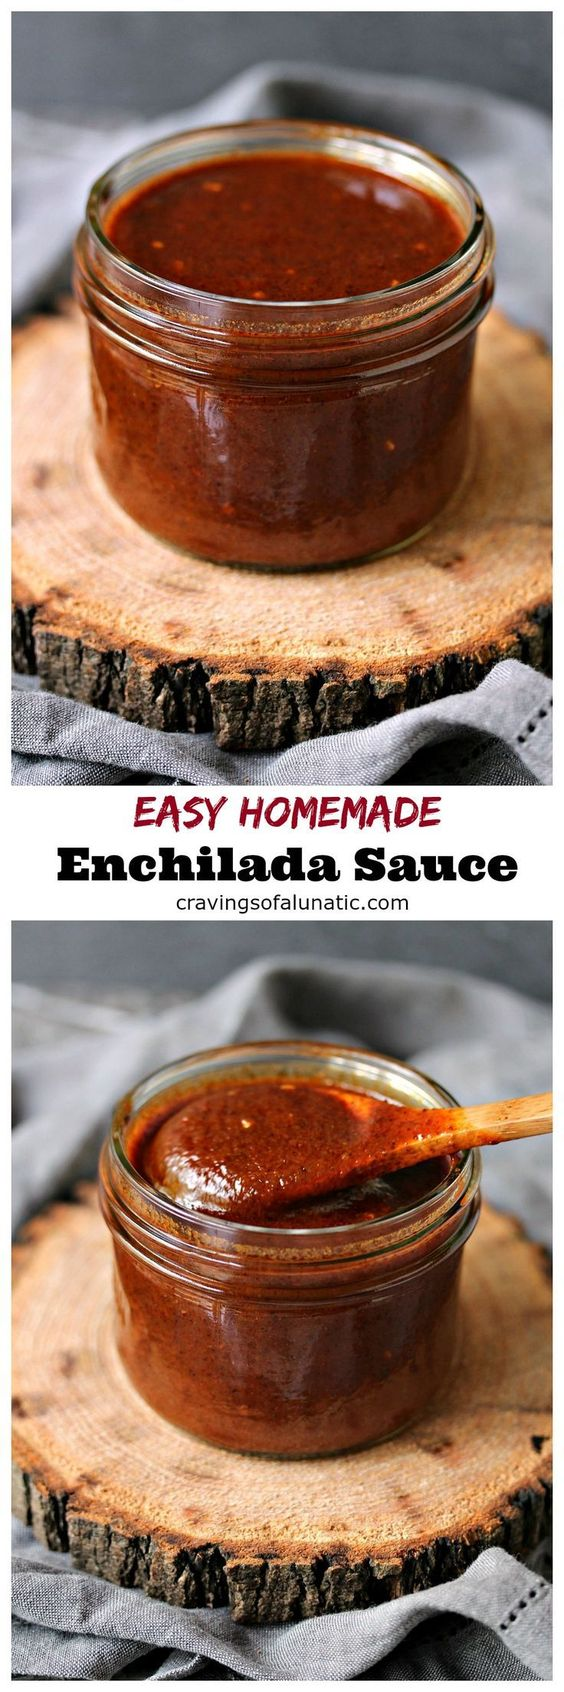 Easy Homemade Enchilada Sauce from http://cravingsofalunatic.com- This recipe is incredibly easy to make, plus it is super quick. You can whip it up in about 20 minutes. That's perfect for anyone who wants to whip enchiladas quickly. (/CravingsLunatic/)